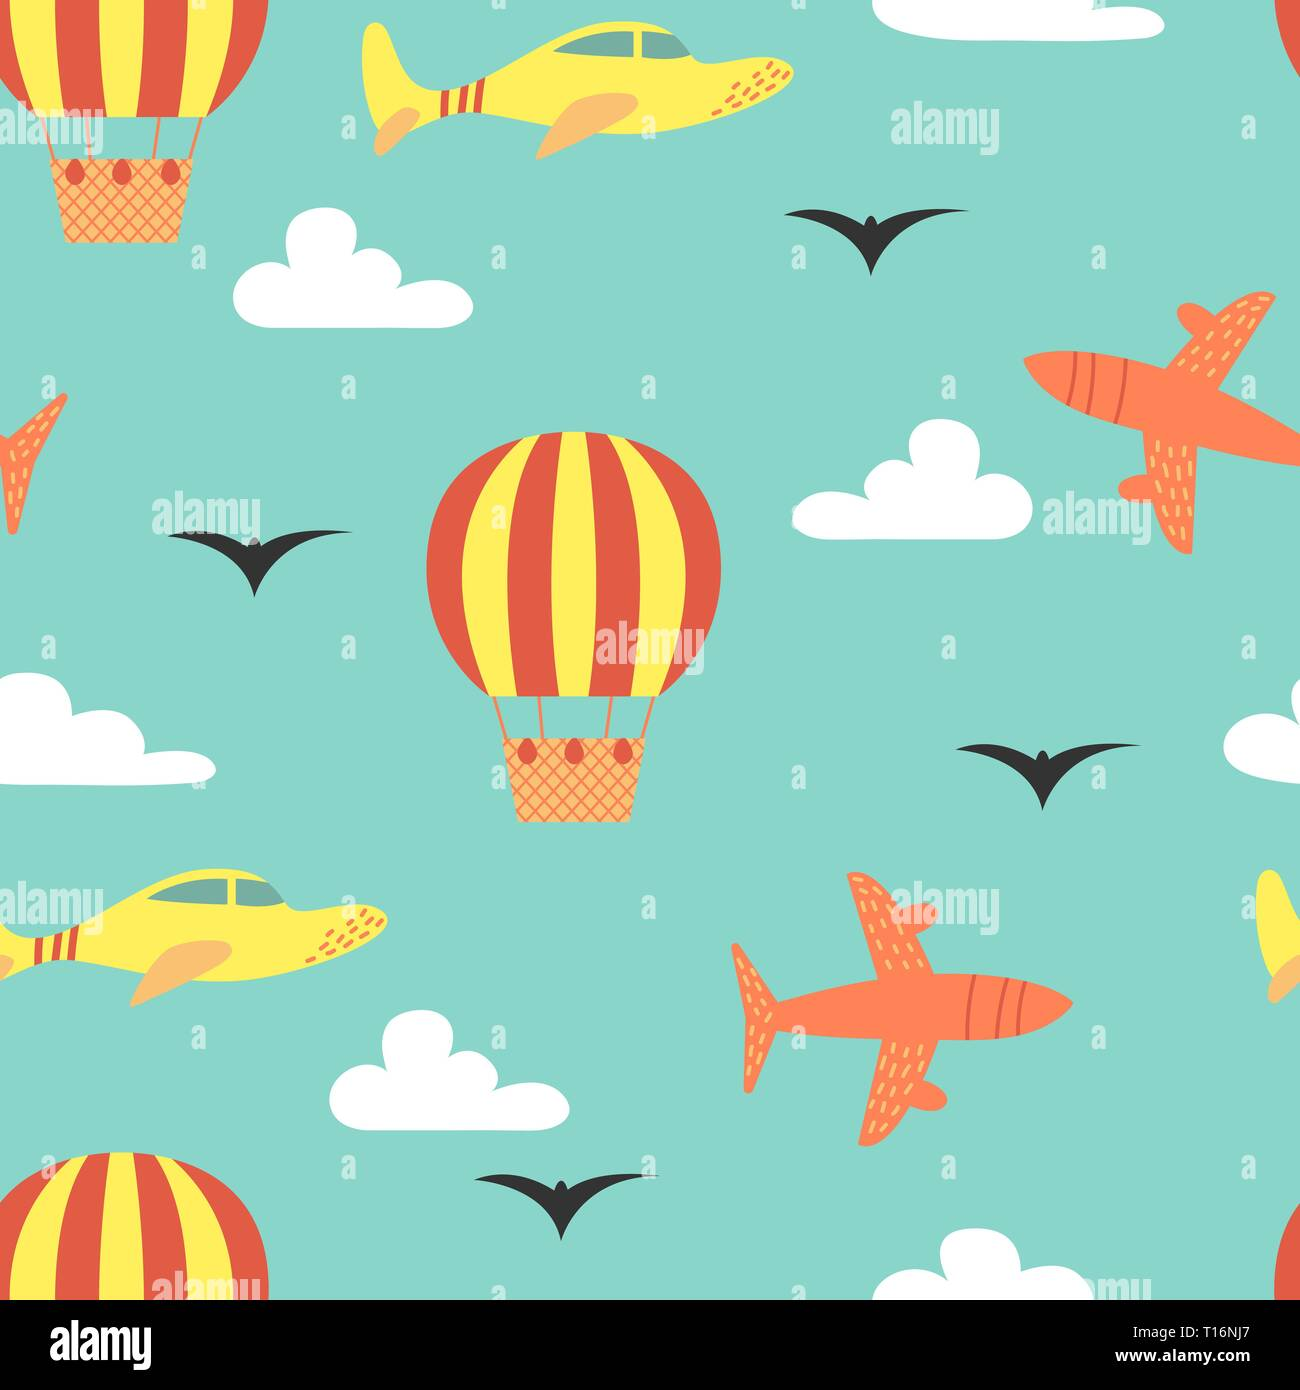 Unduh 7100 Koleksi Background Desain Air Gratis